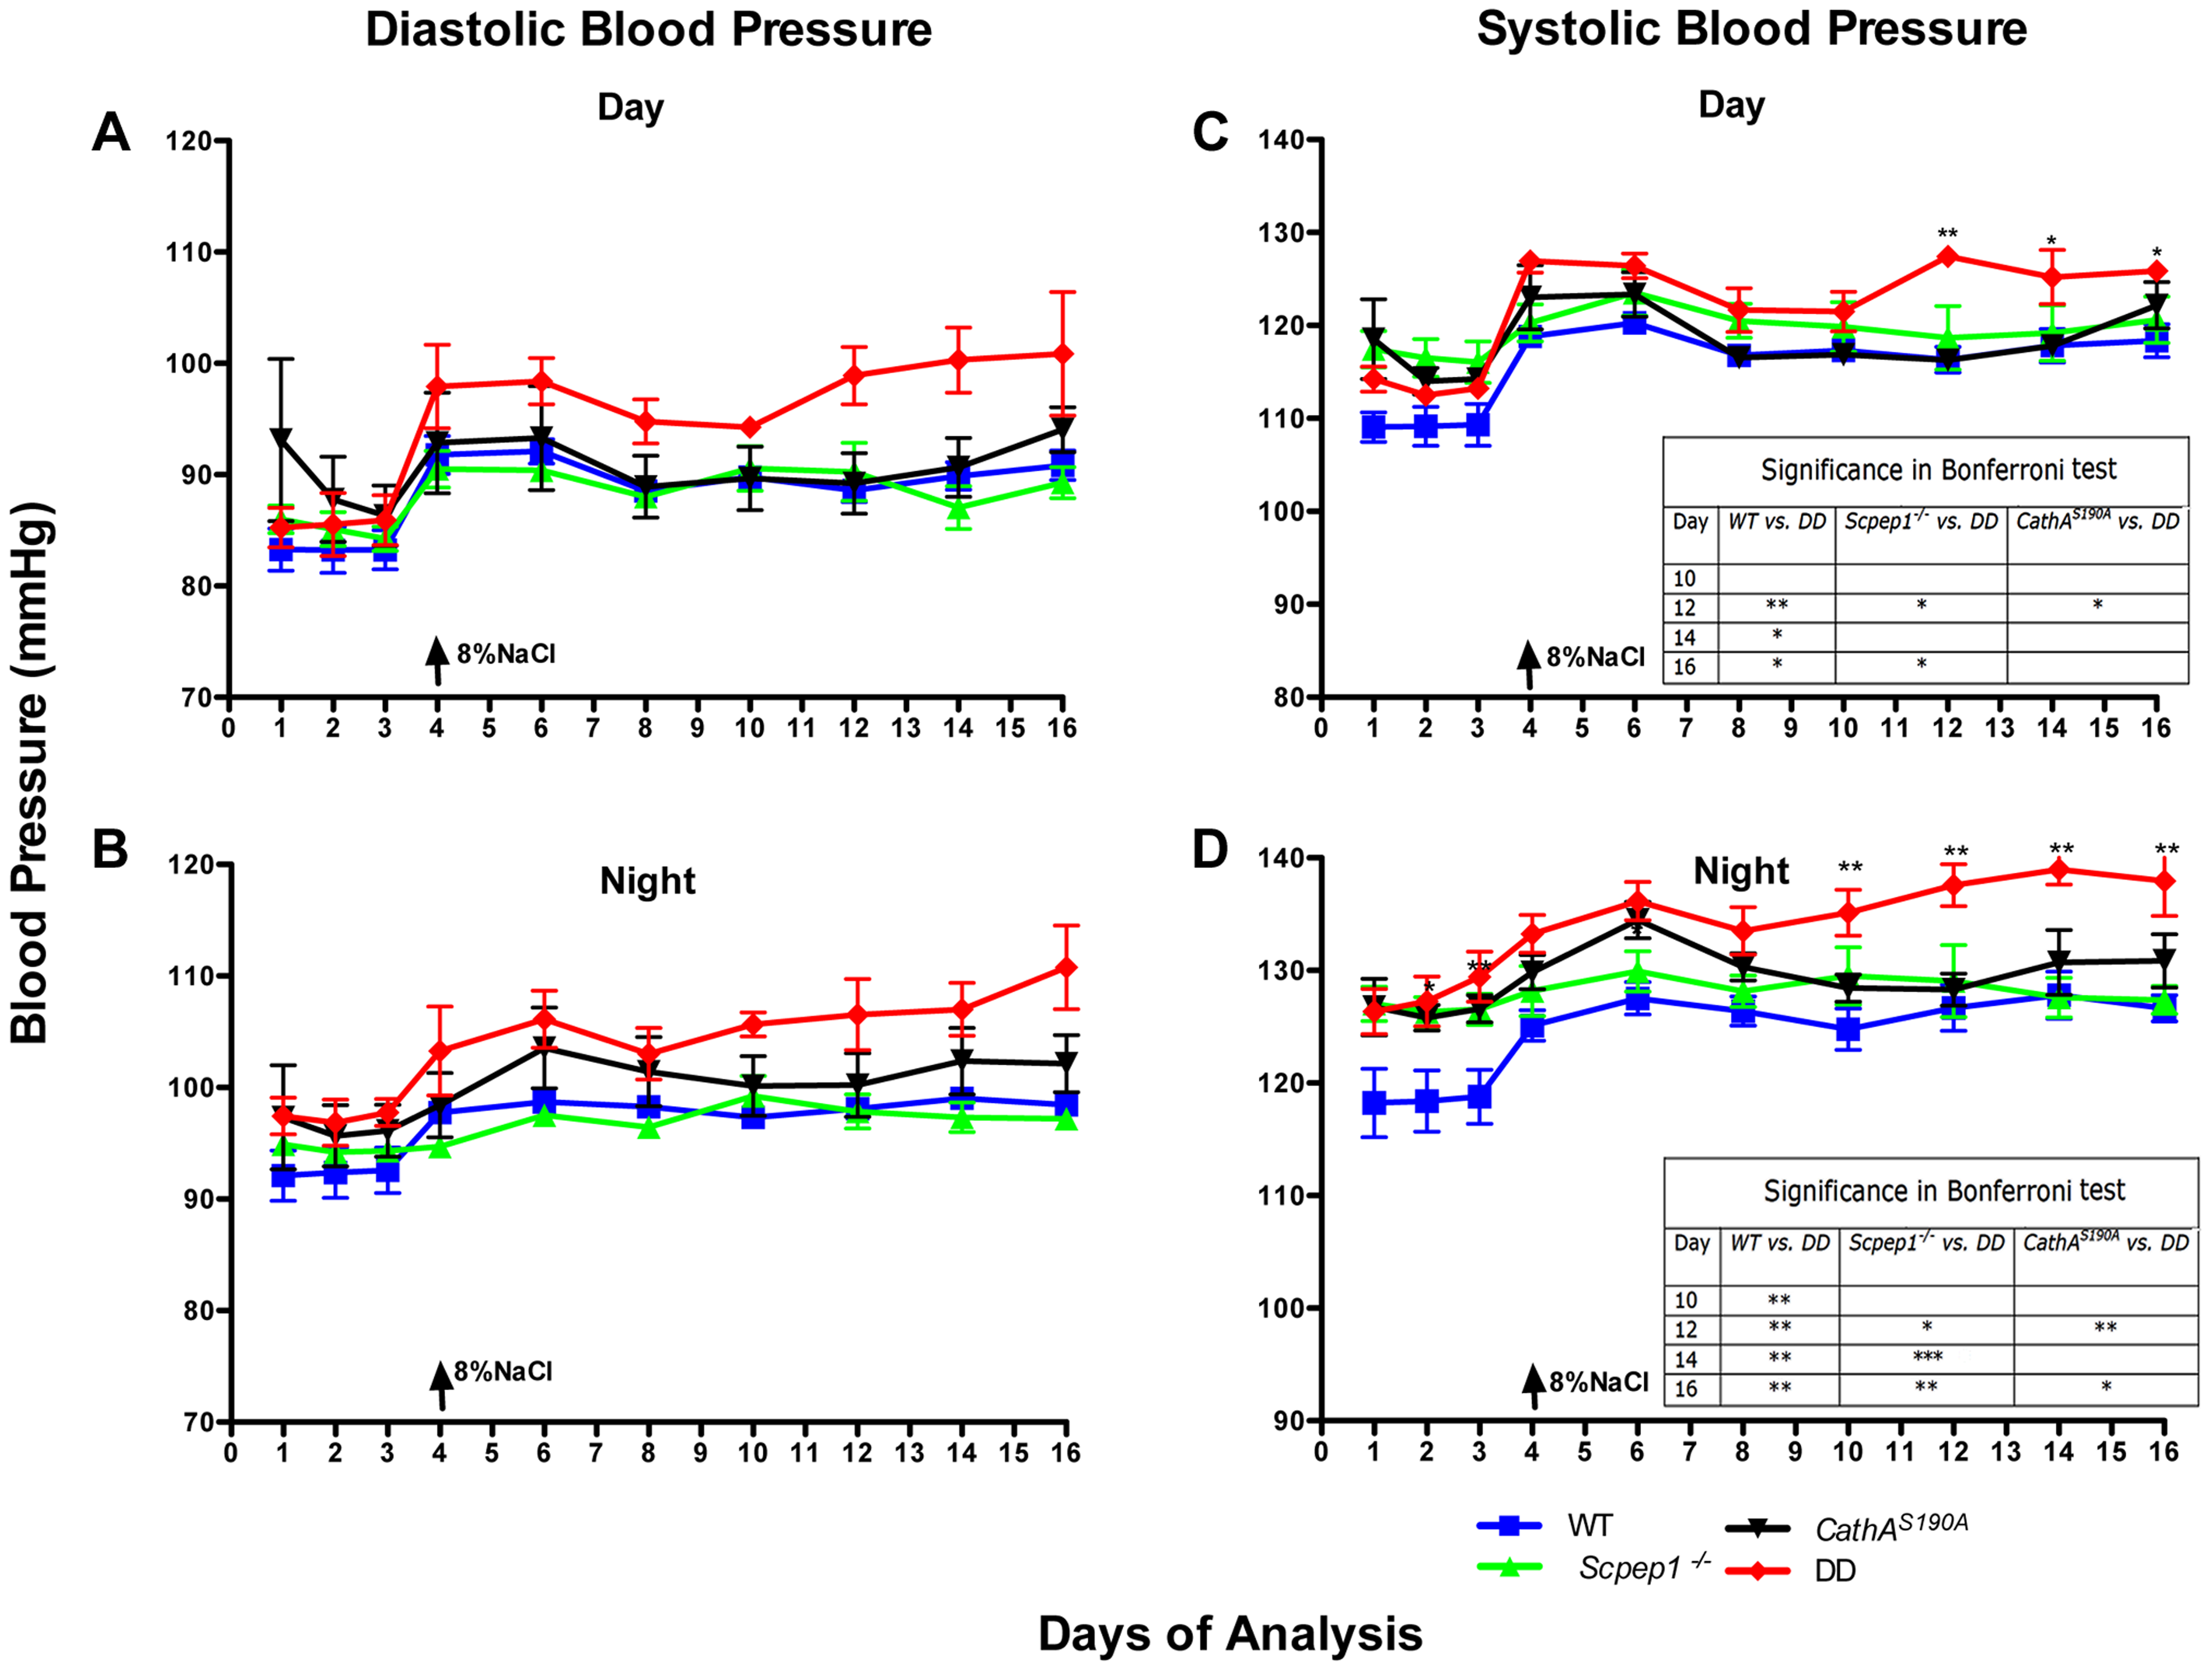 Mice with combined CathA/Scpep1 deficiency show significantly higher values of SBP.